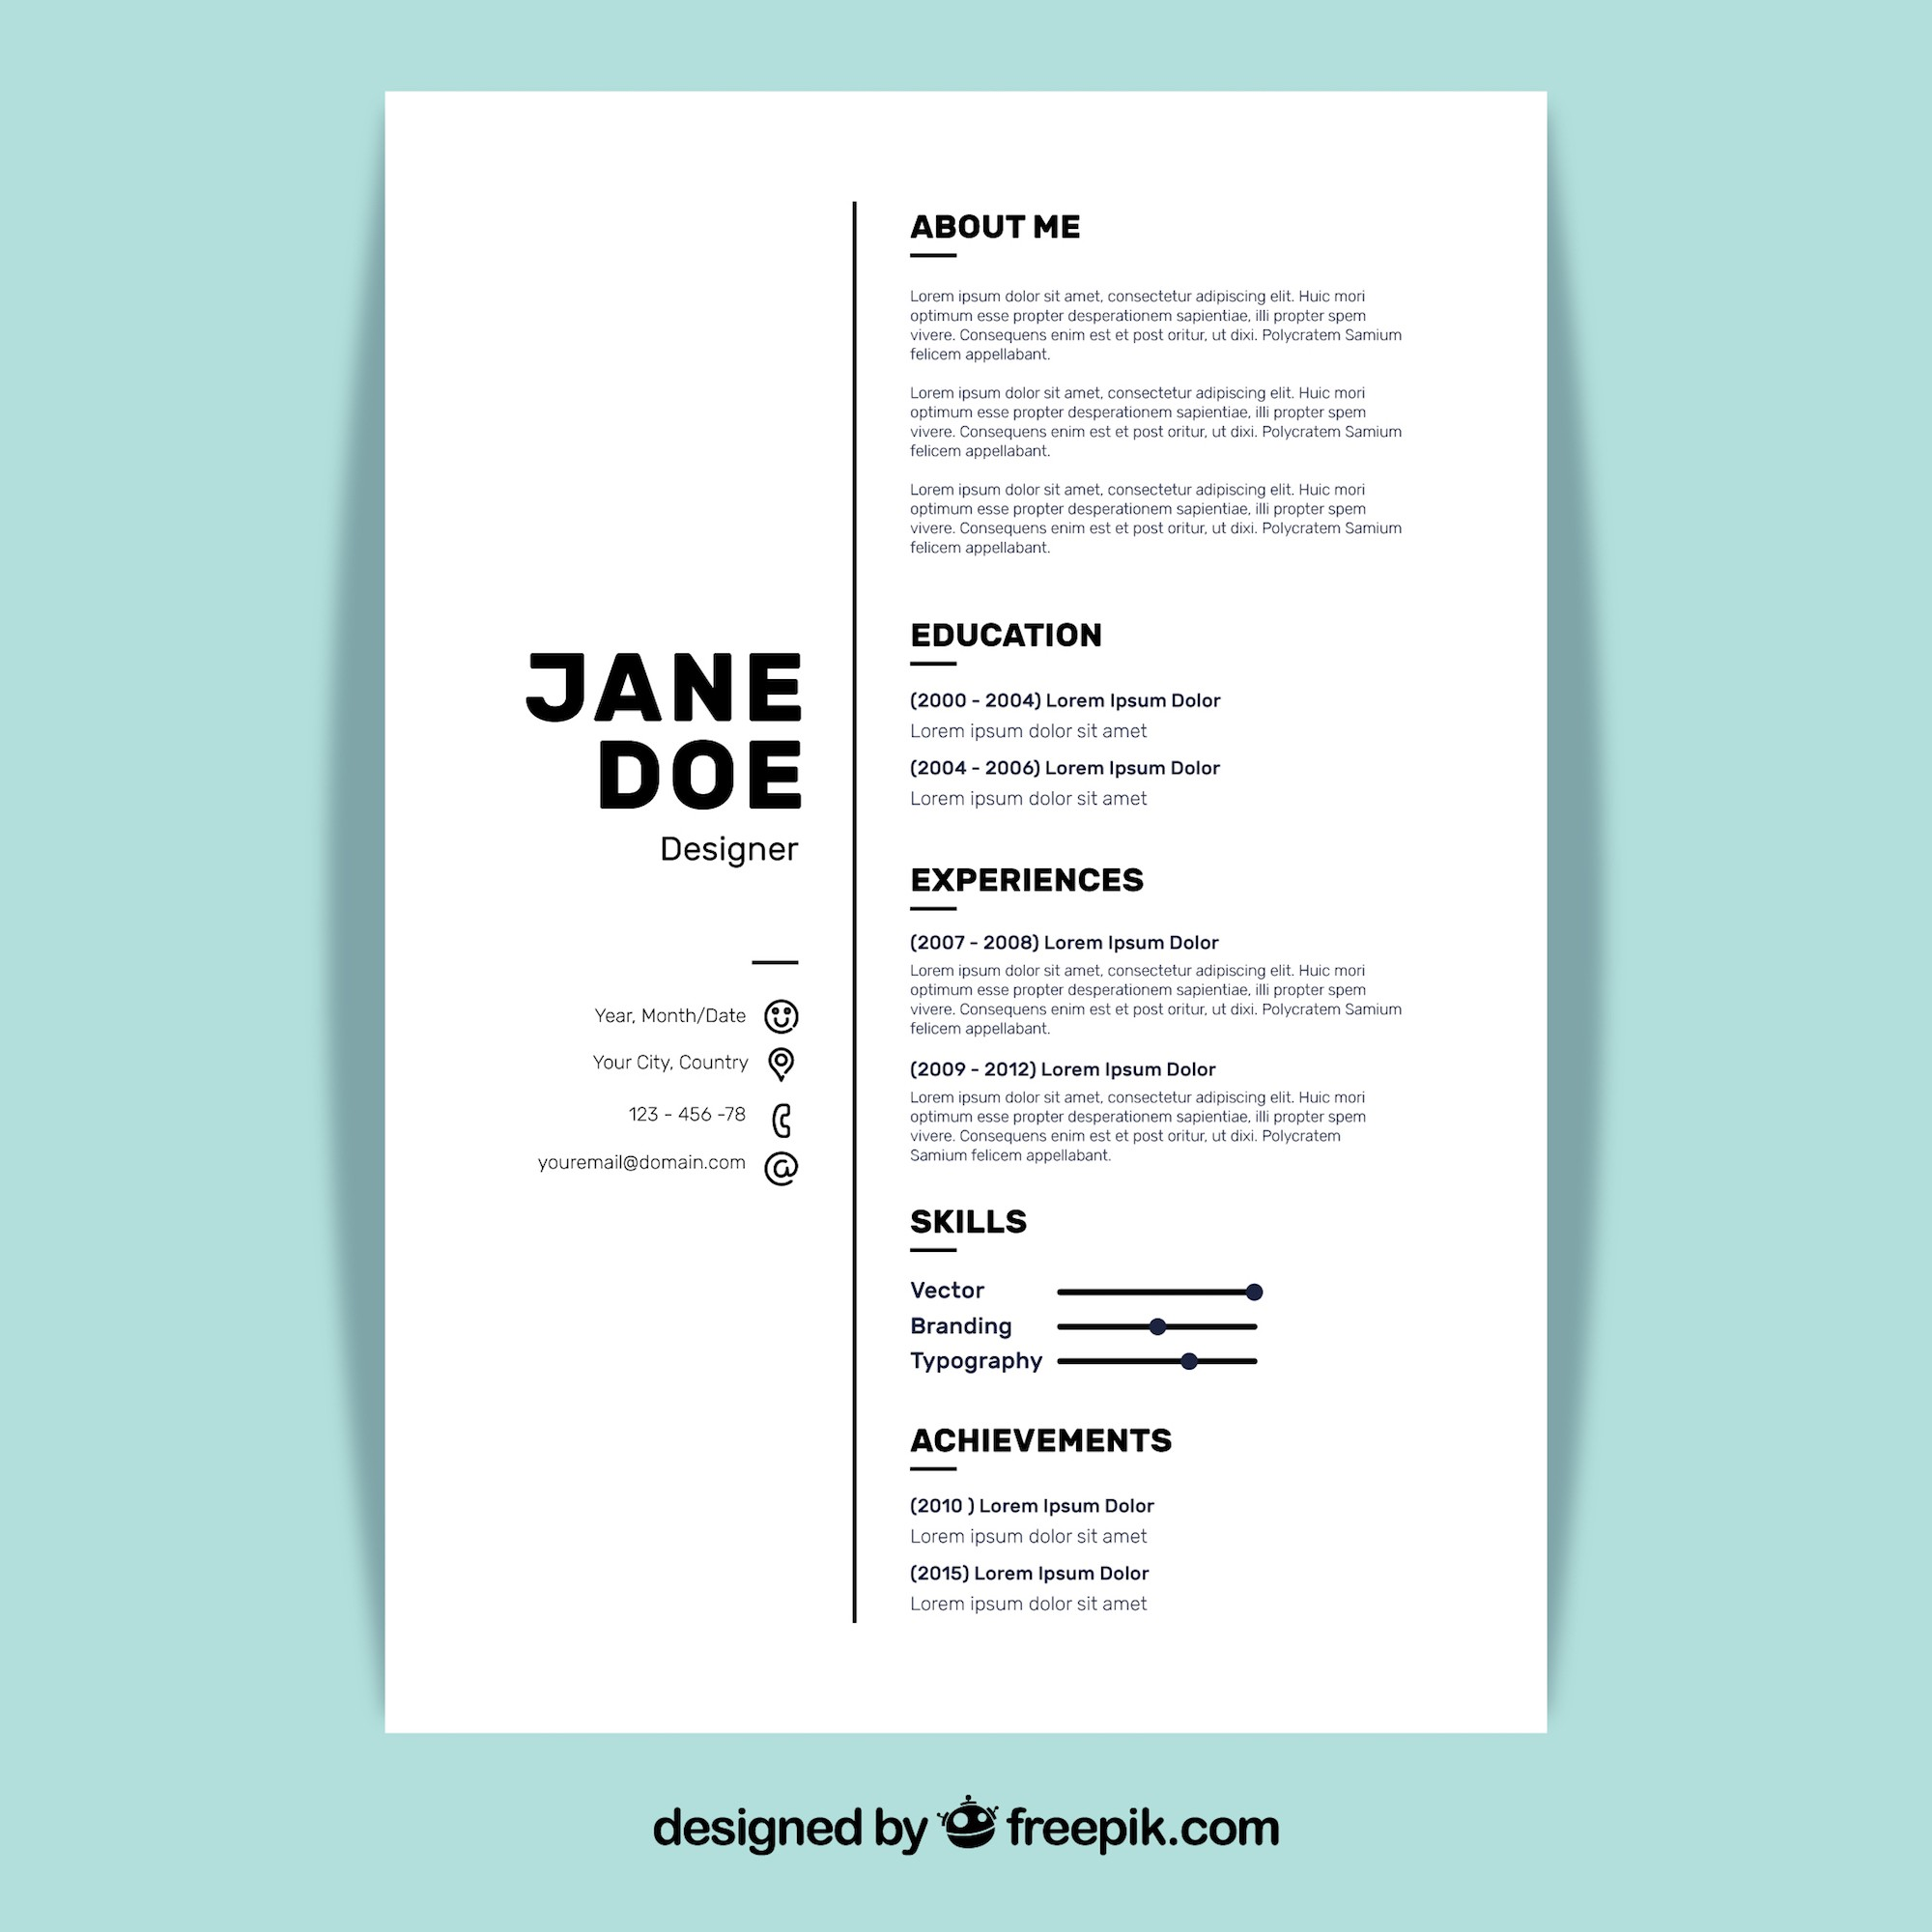 5 Resume Design Principles To Create The Perfect Resume By Board